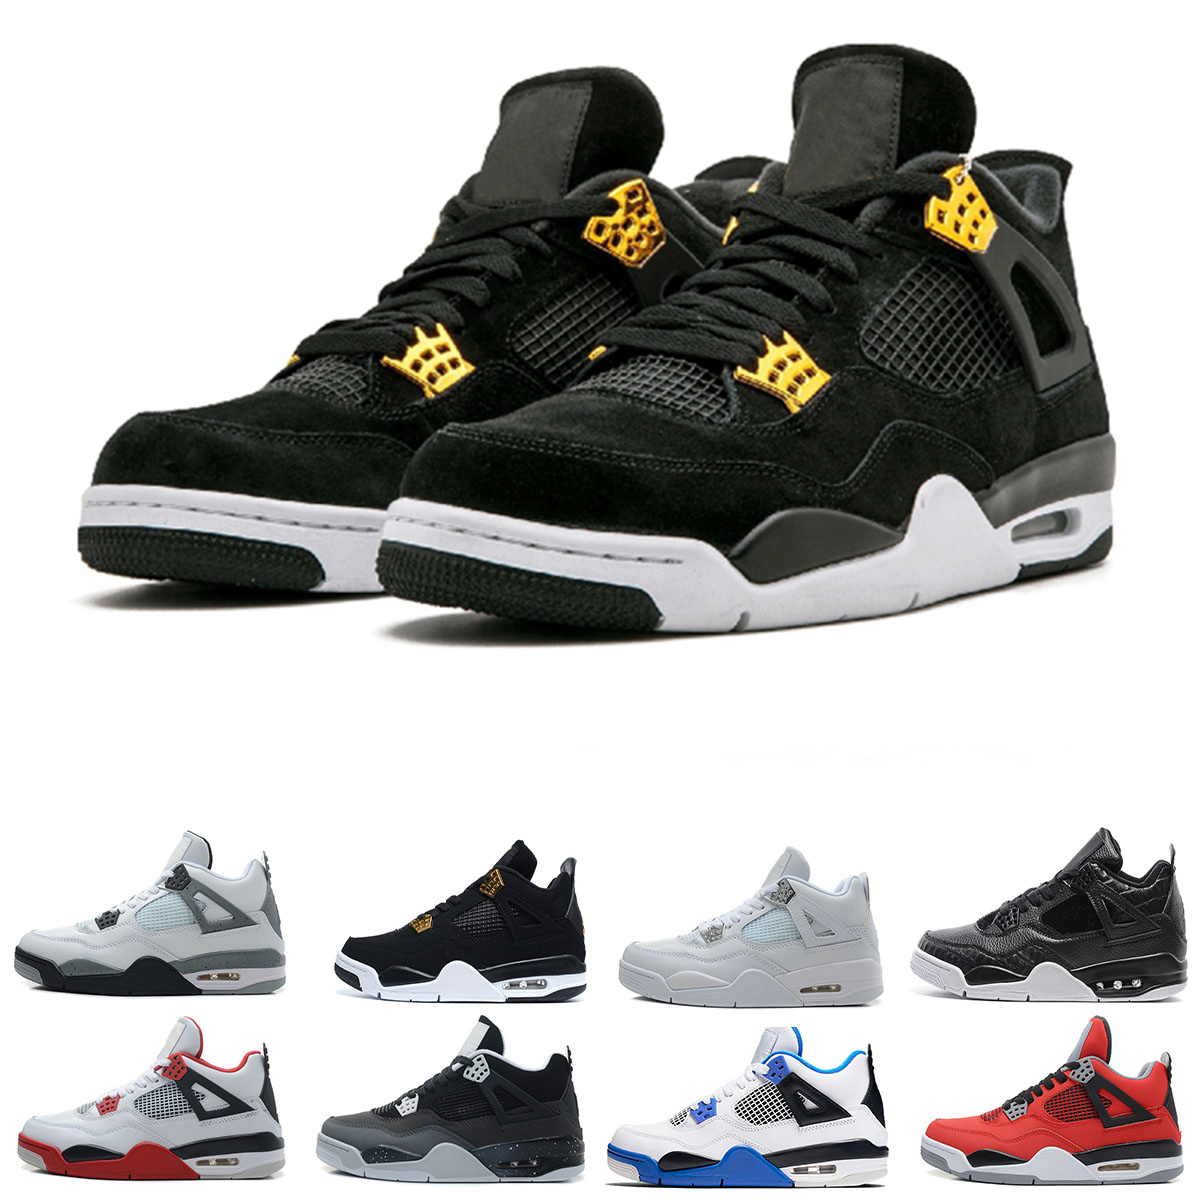 Drop shipping 4 Cactus Jack Basketball Shoes for men Pure Money Royalty White Cement Raptors Bred Military Blue mens Sport Sneakers trainer